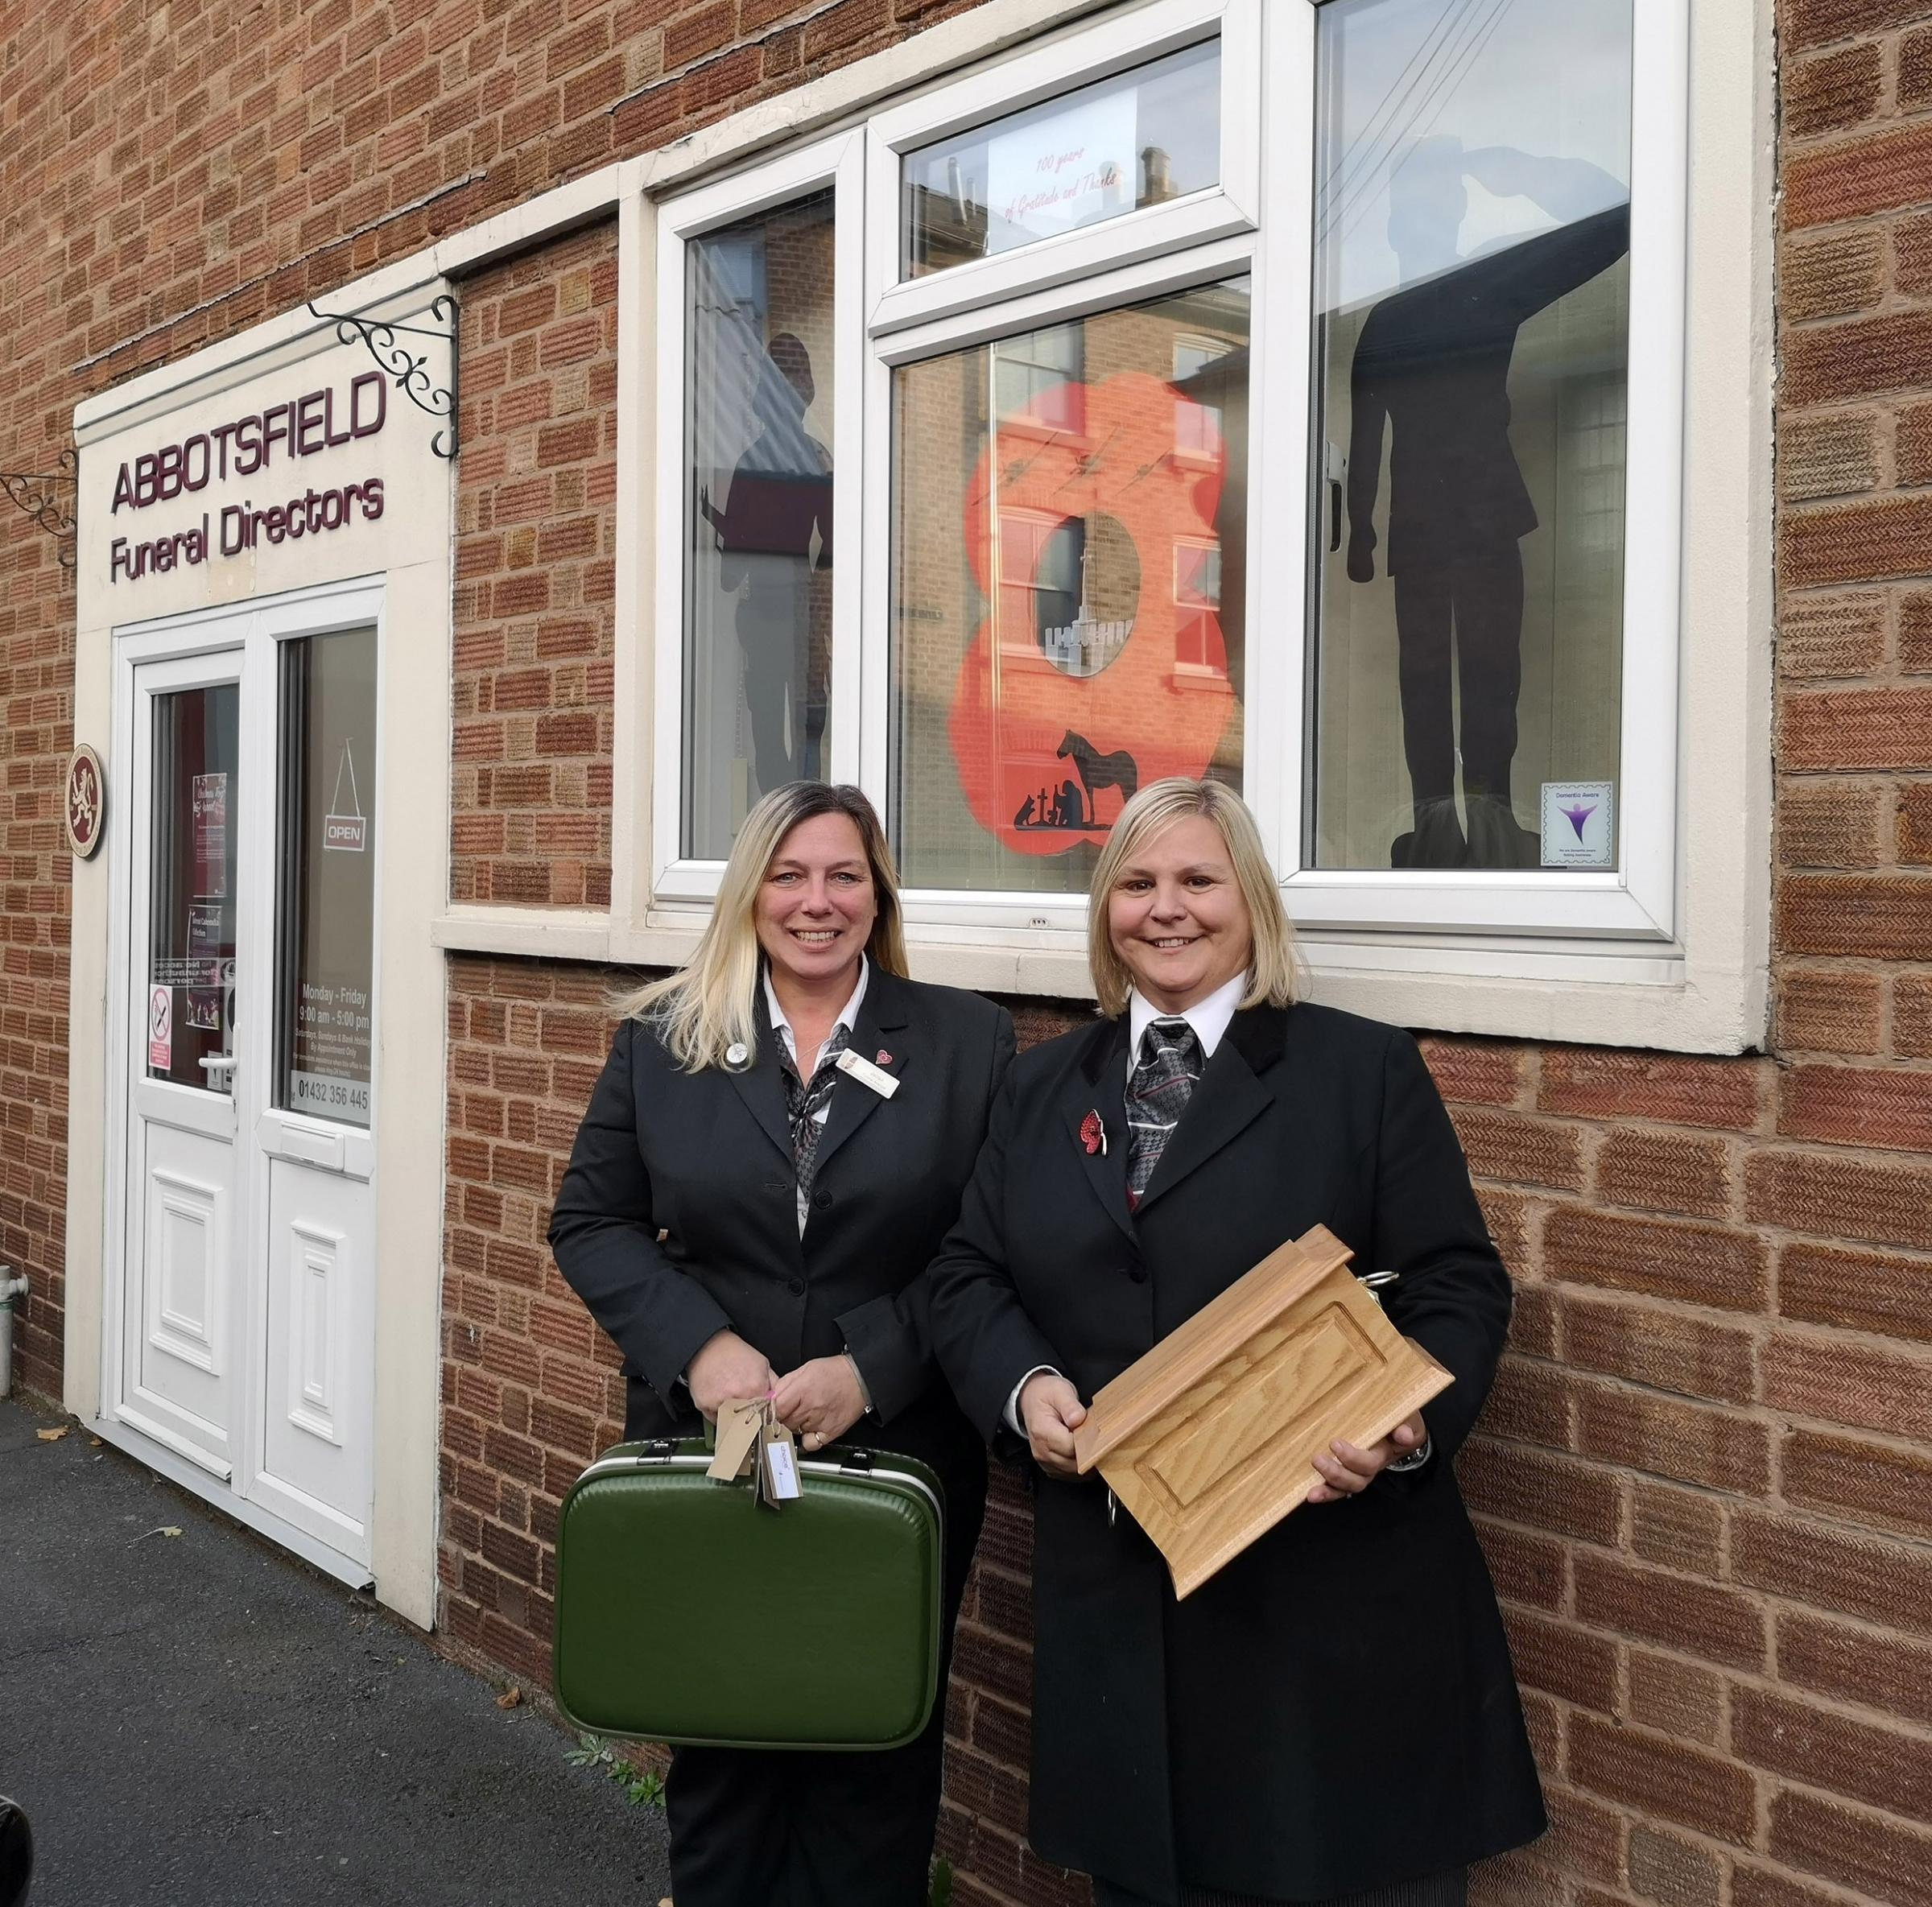 Jacqui Williams and Joanne Gardiner are collecting memories and poignant items at Abbotsfield Funeral Directors in Hereford for the time capsule.